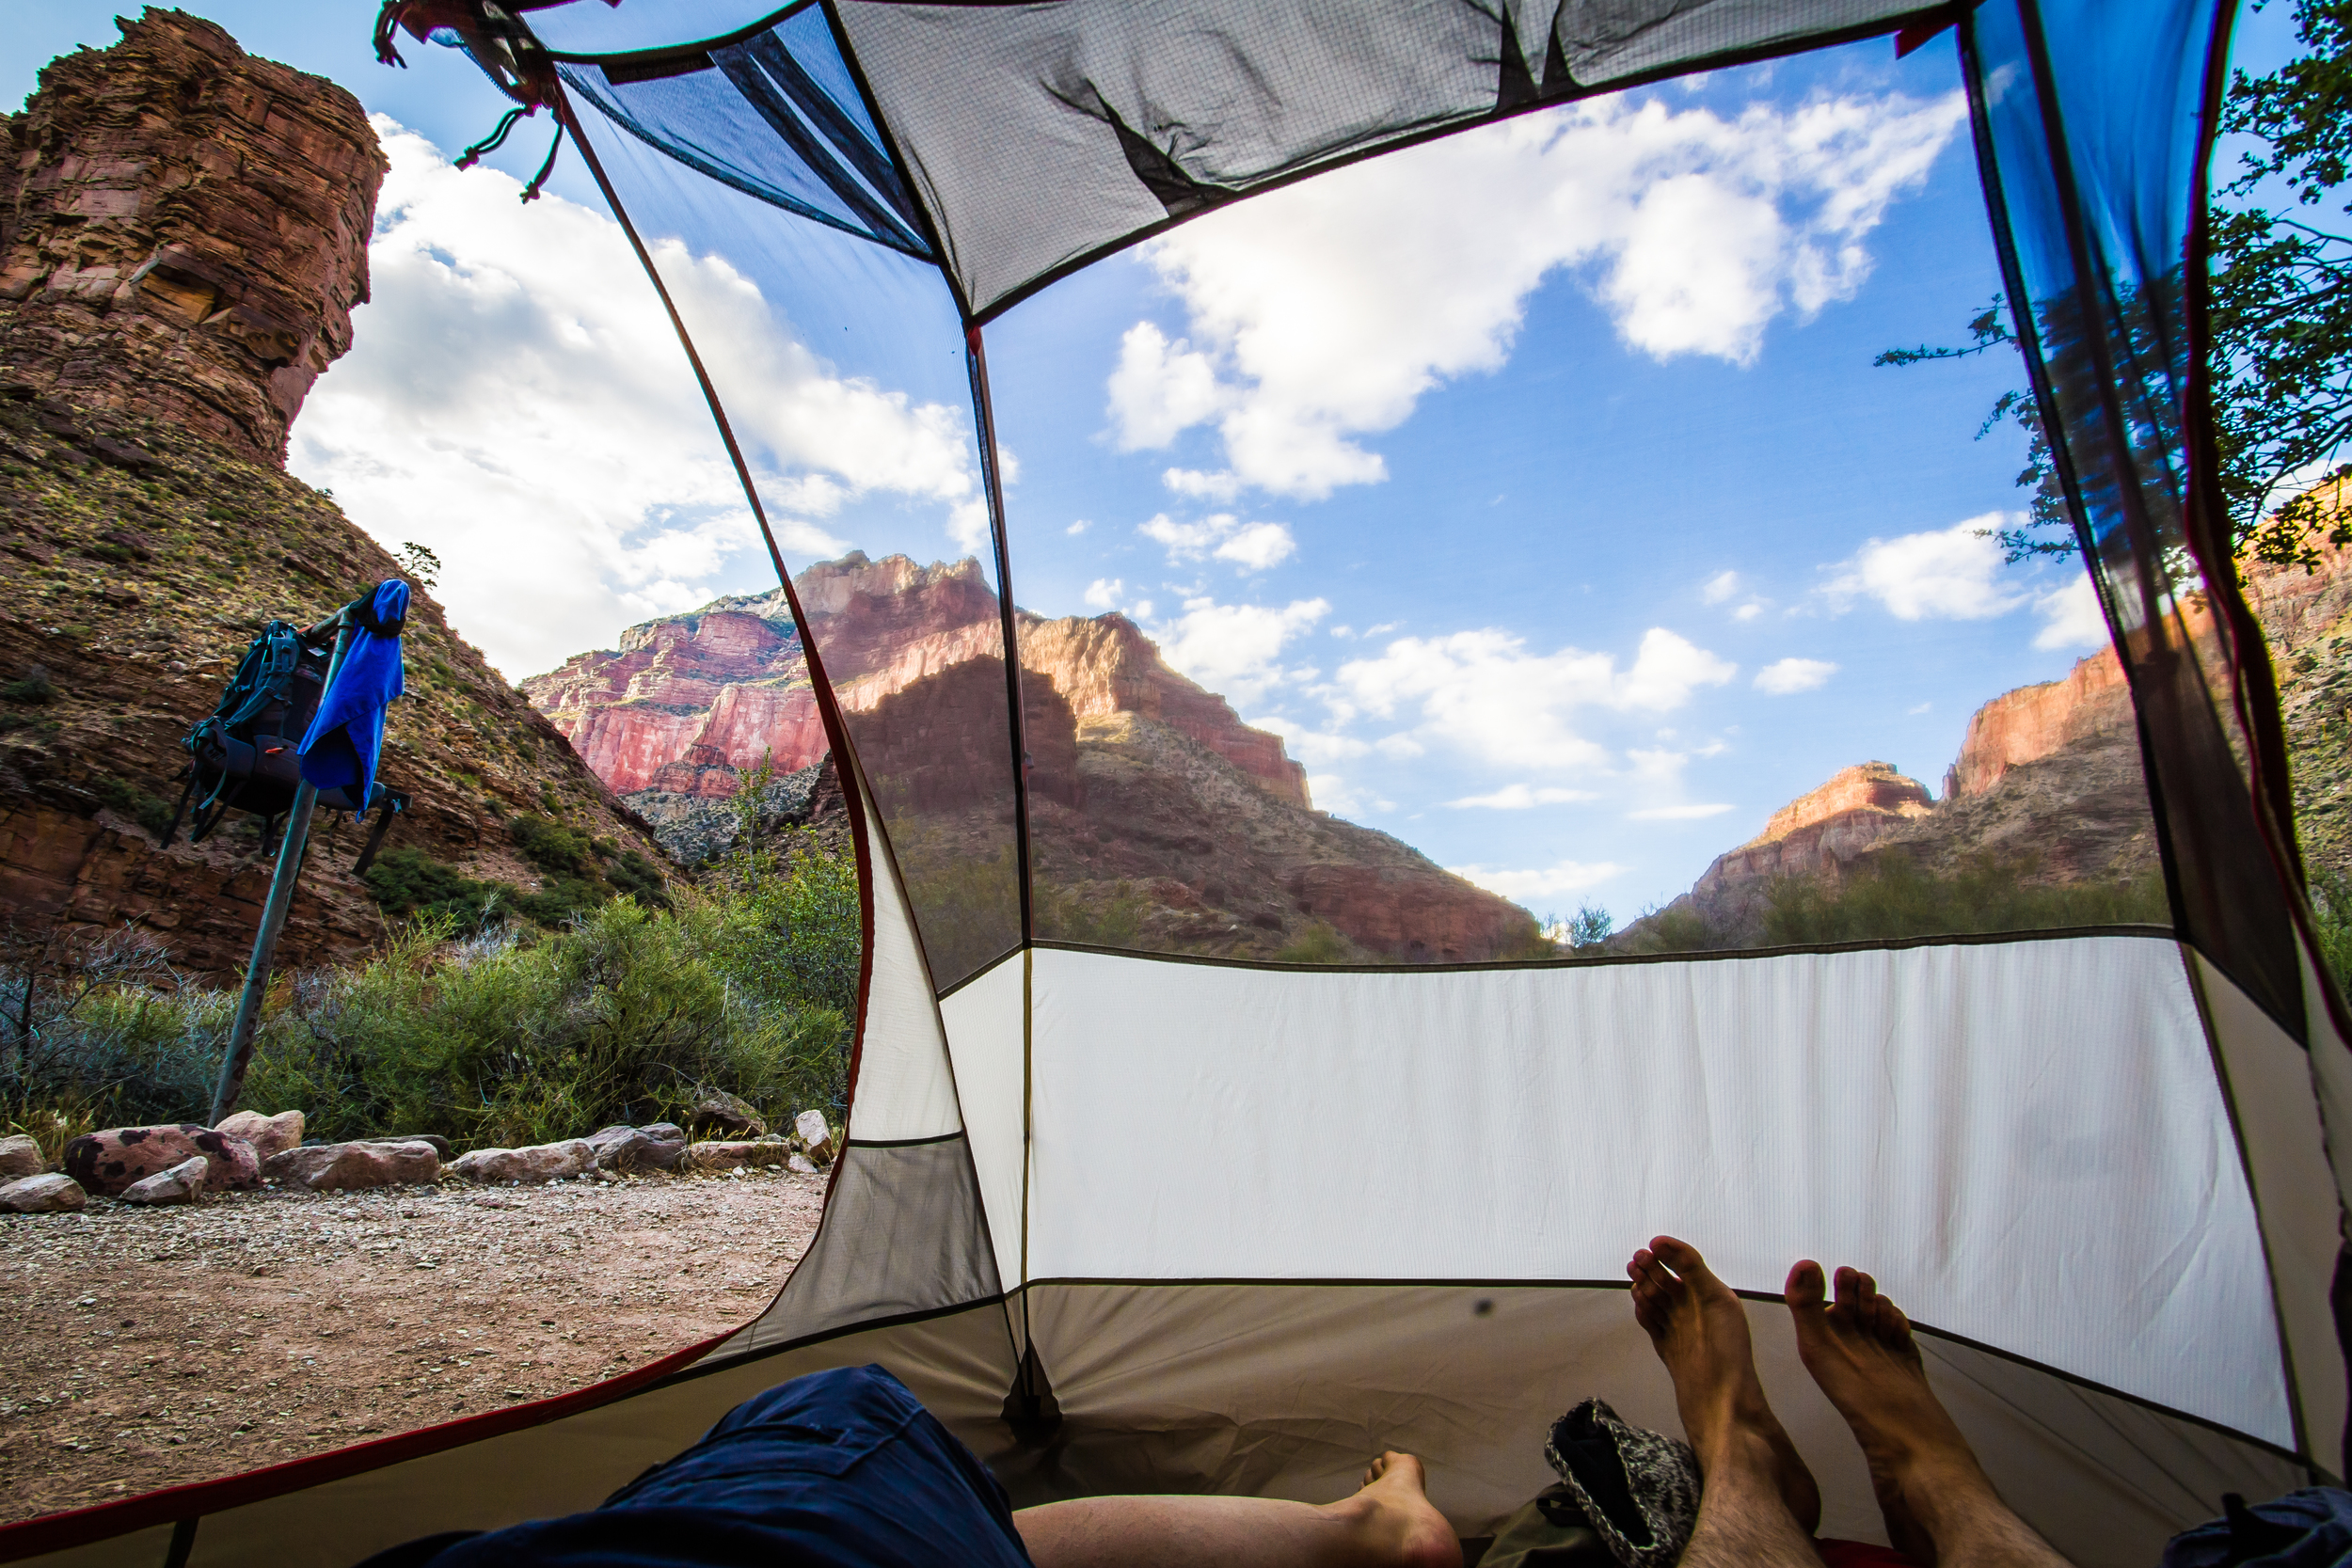 Camping in Cotton Wood campground